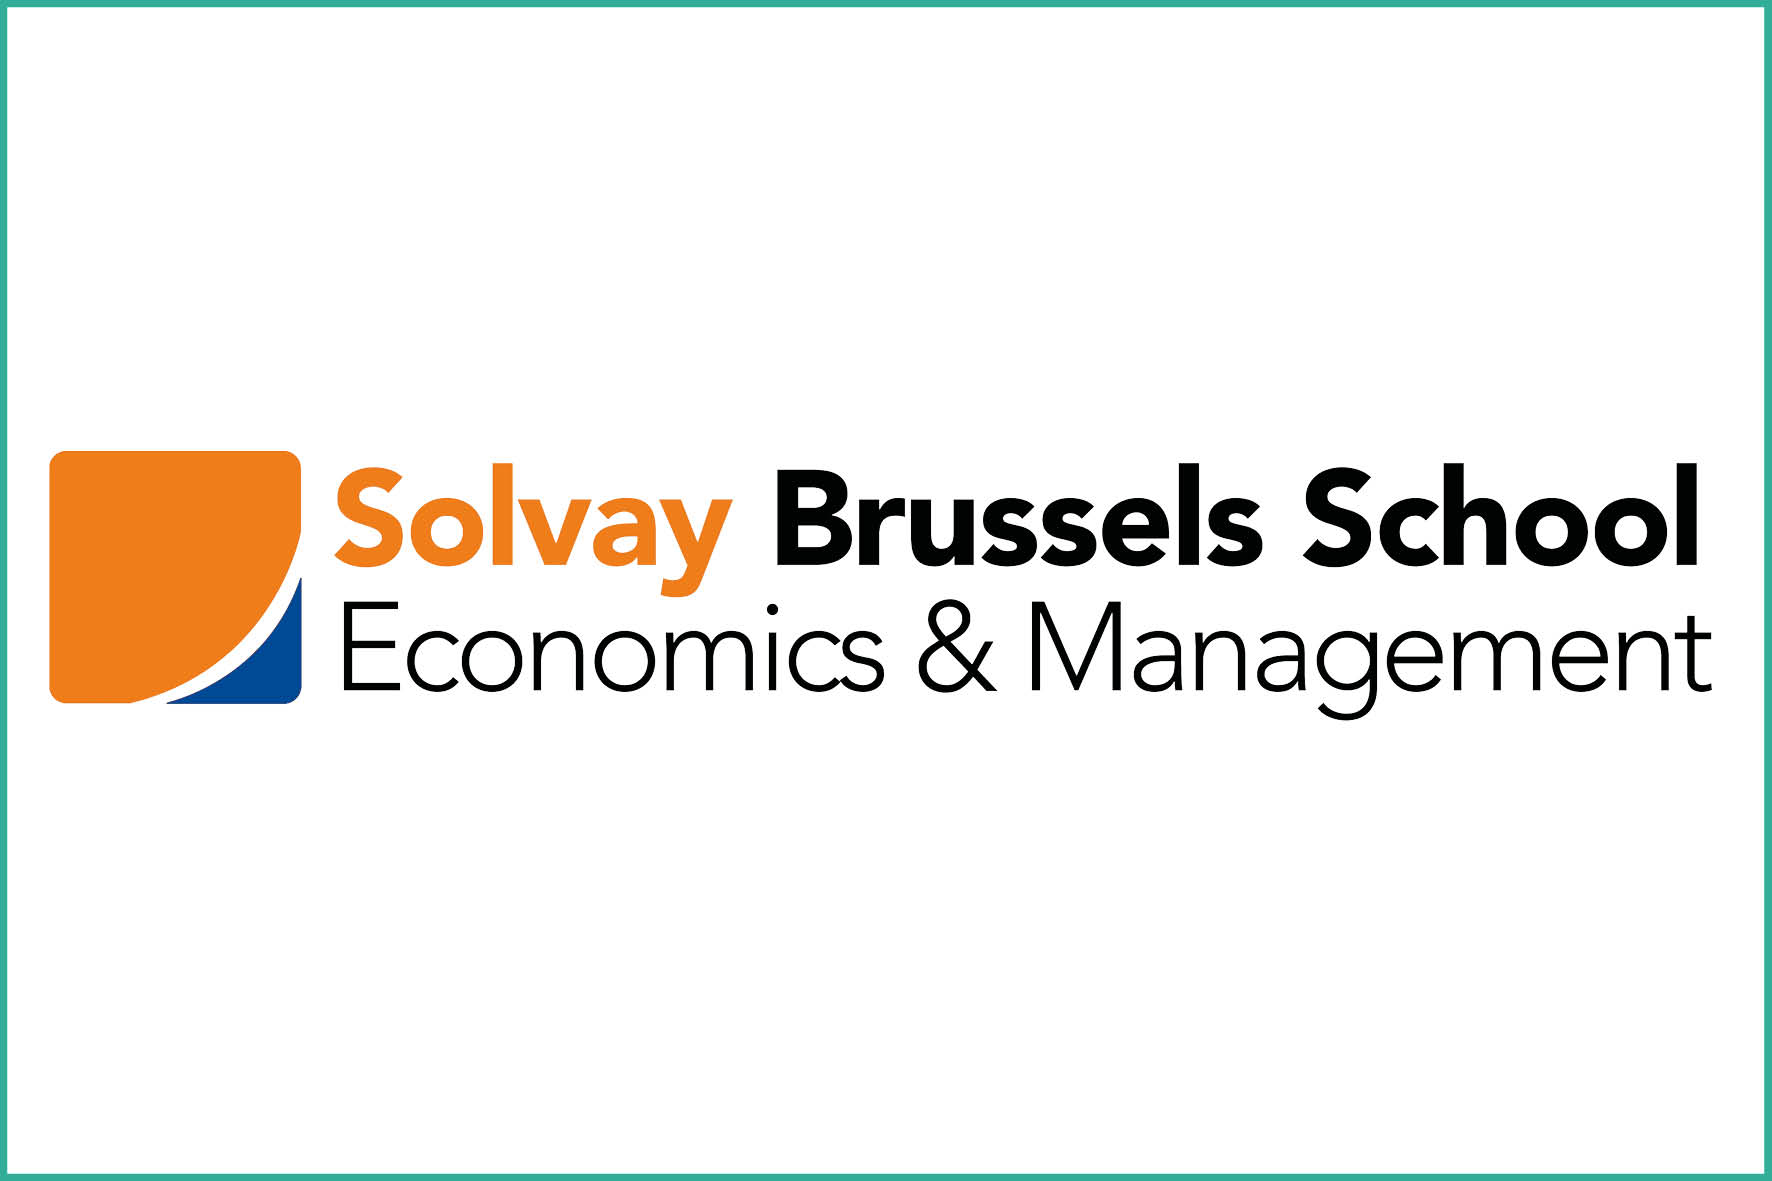 bcc-solvay-brussels-school